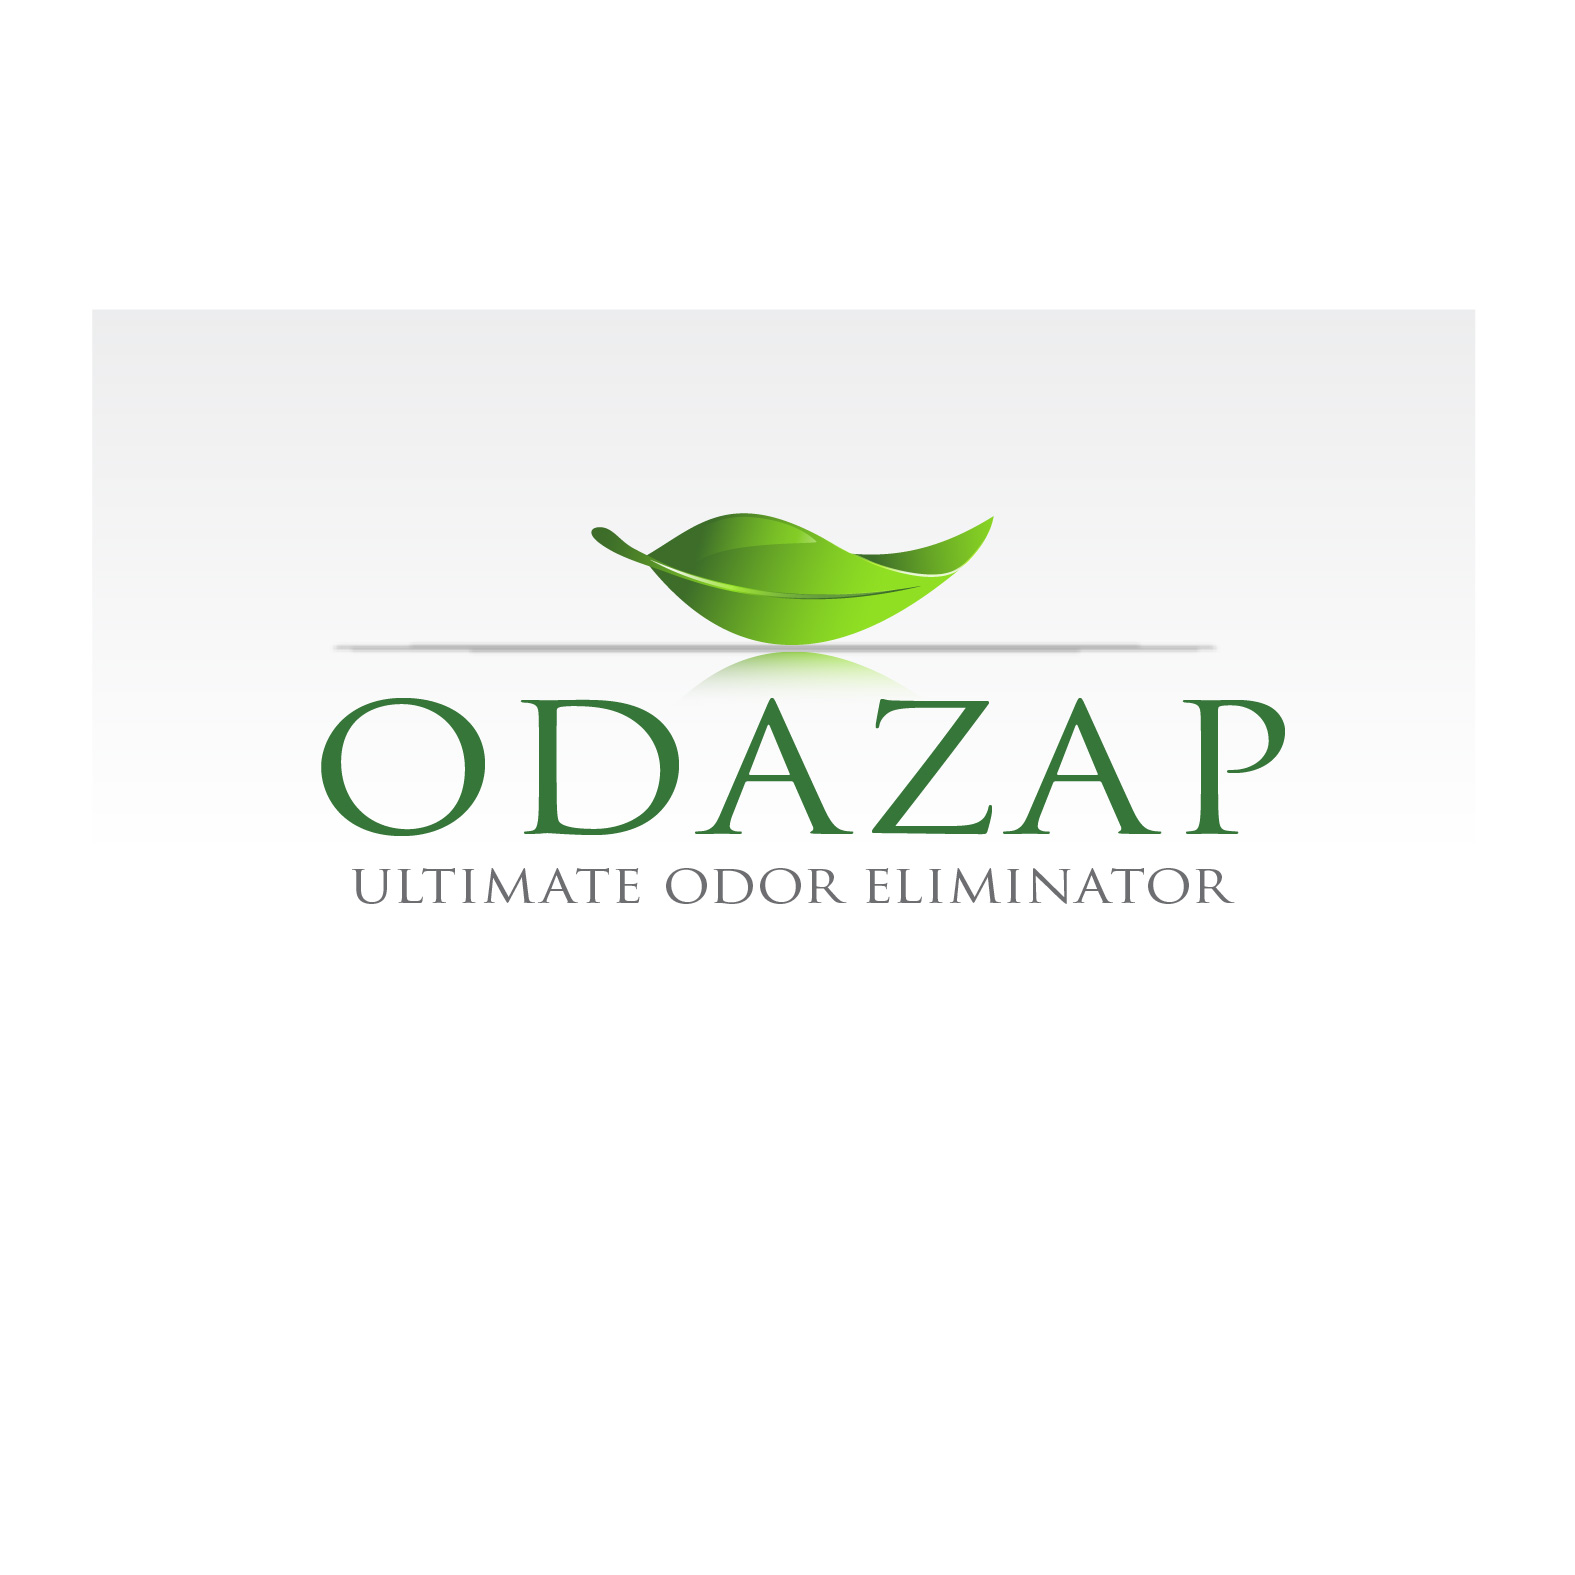 Logo Design by Robert Engi - Entry No. 37 in the Logo Design Contest New Logo Design for ODAZAP.